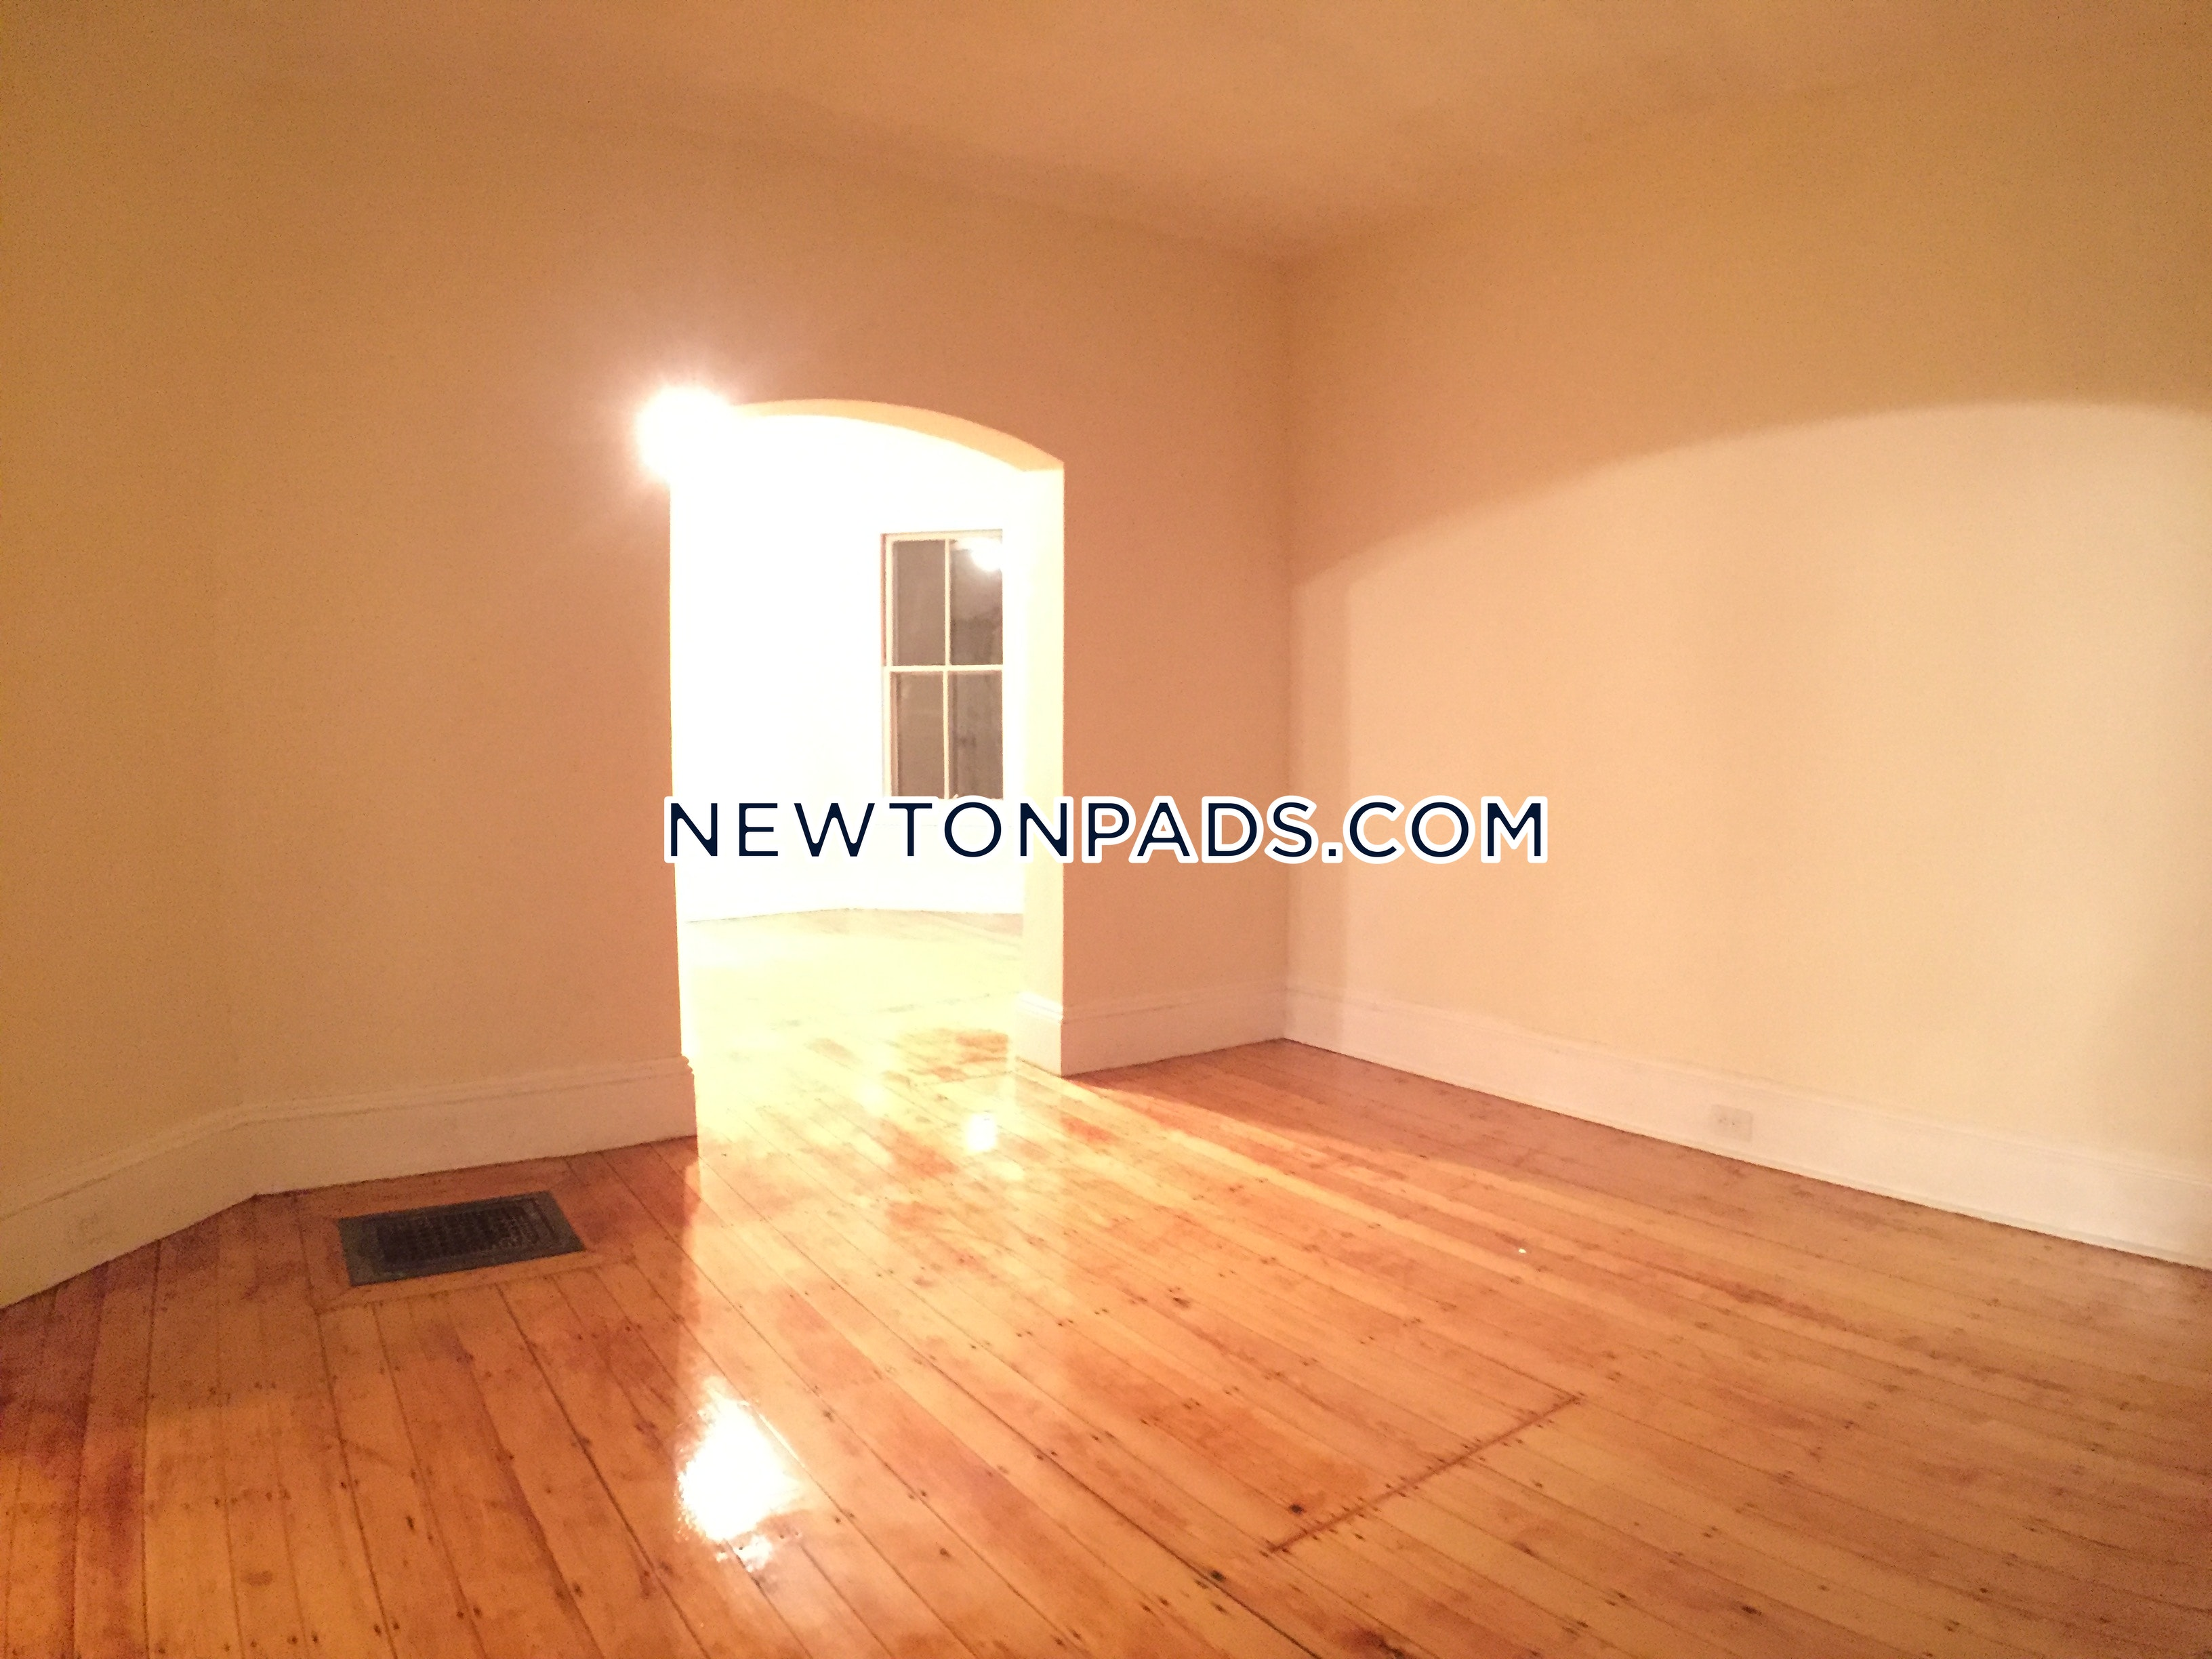 5 Beds 1 Bath - Newton - West Newton $3,000